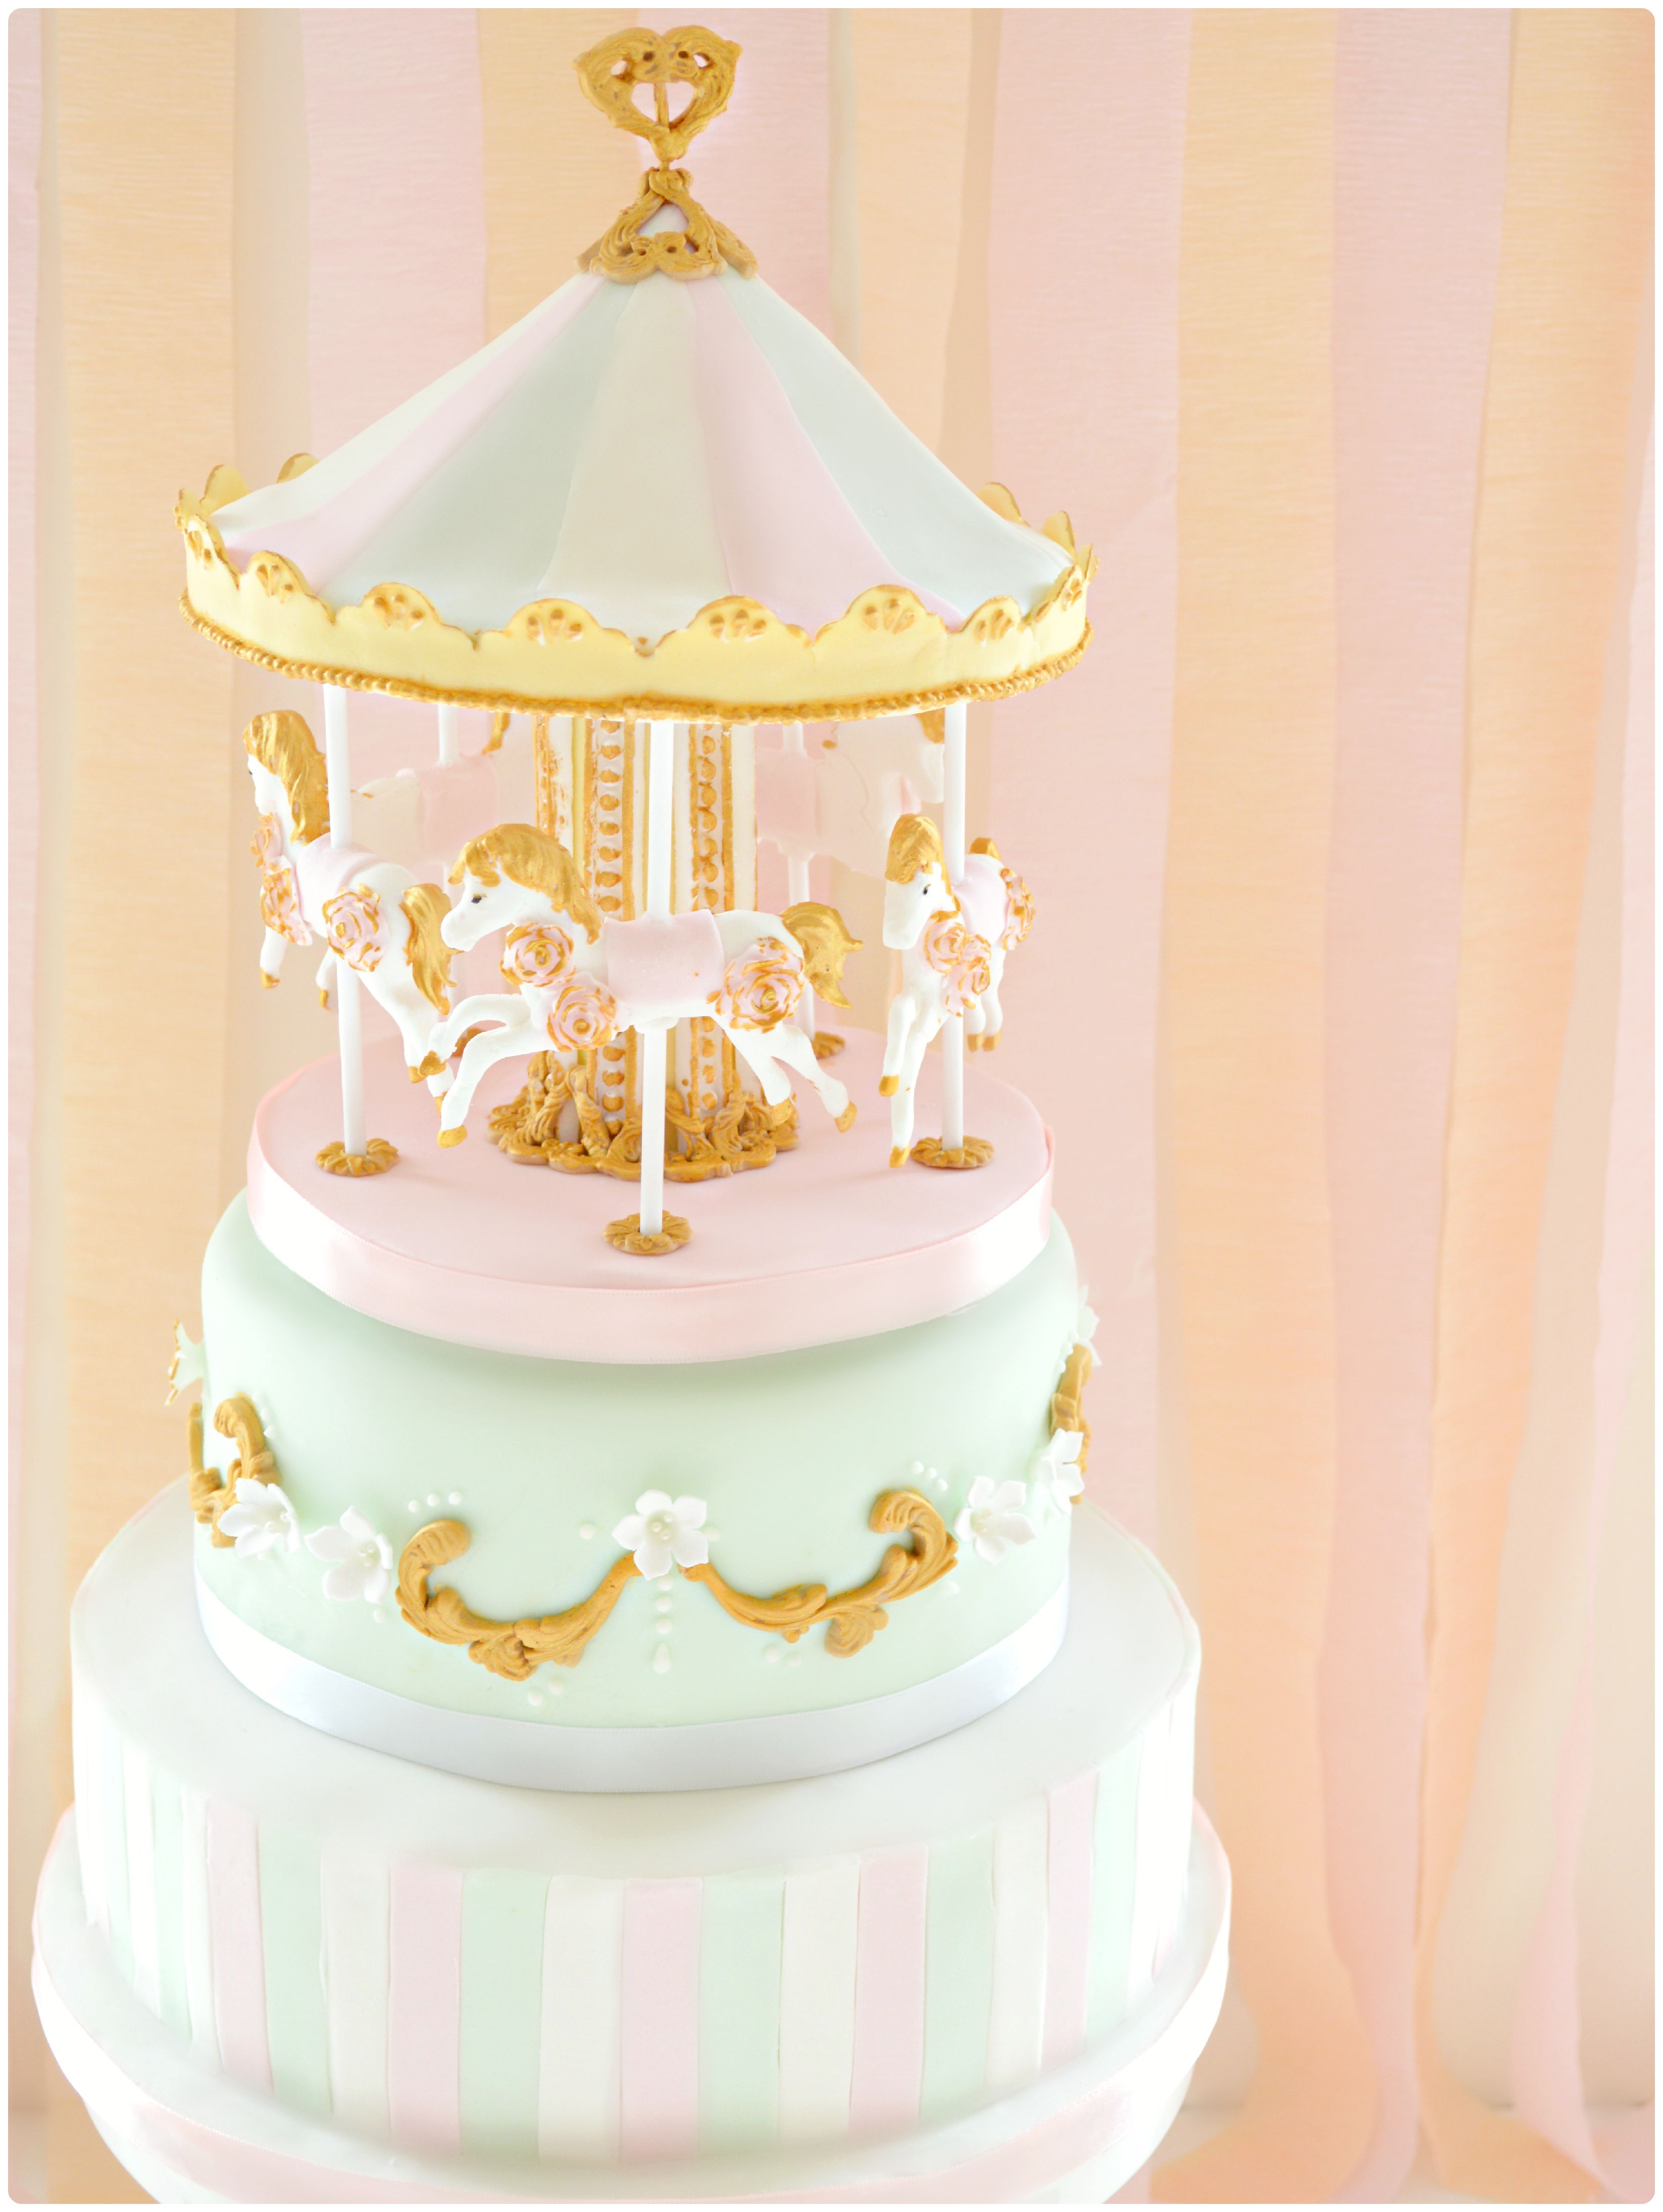 2 Tiers Pink And Mint Carousel Birthday Cake Cherie Kelly London